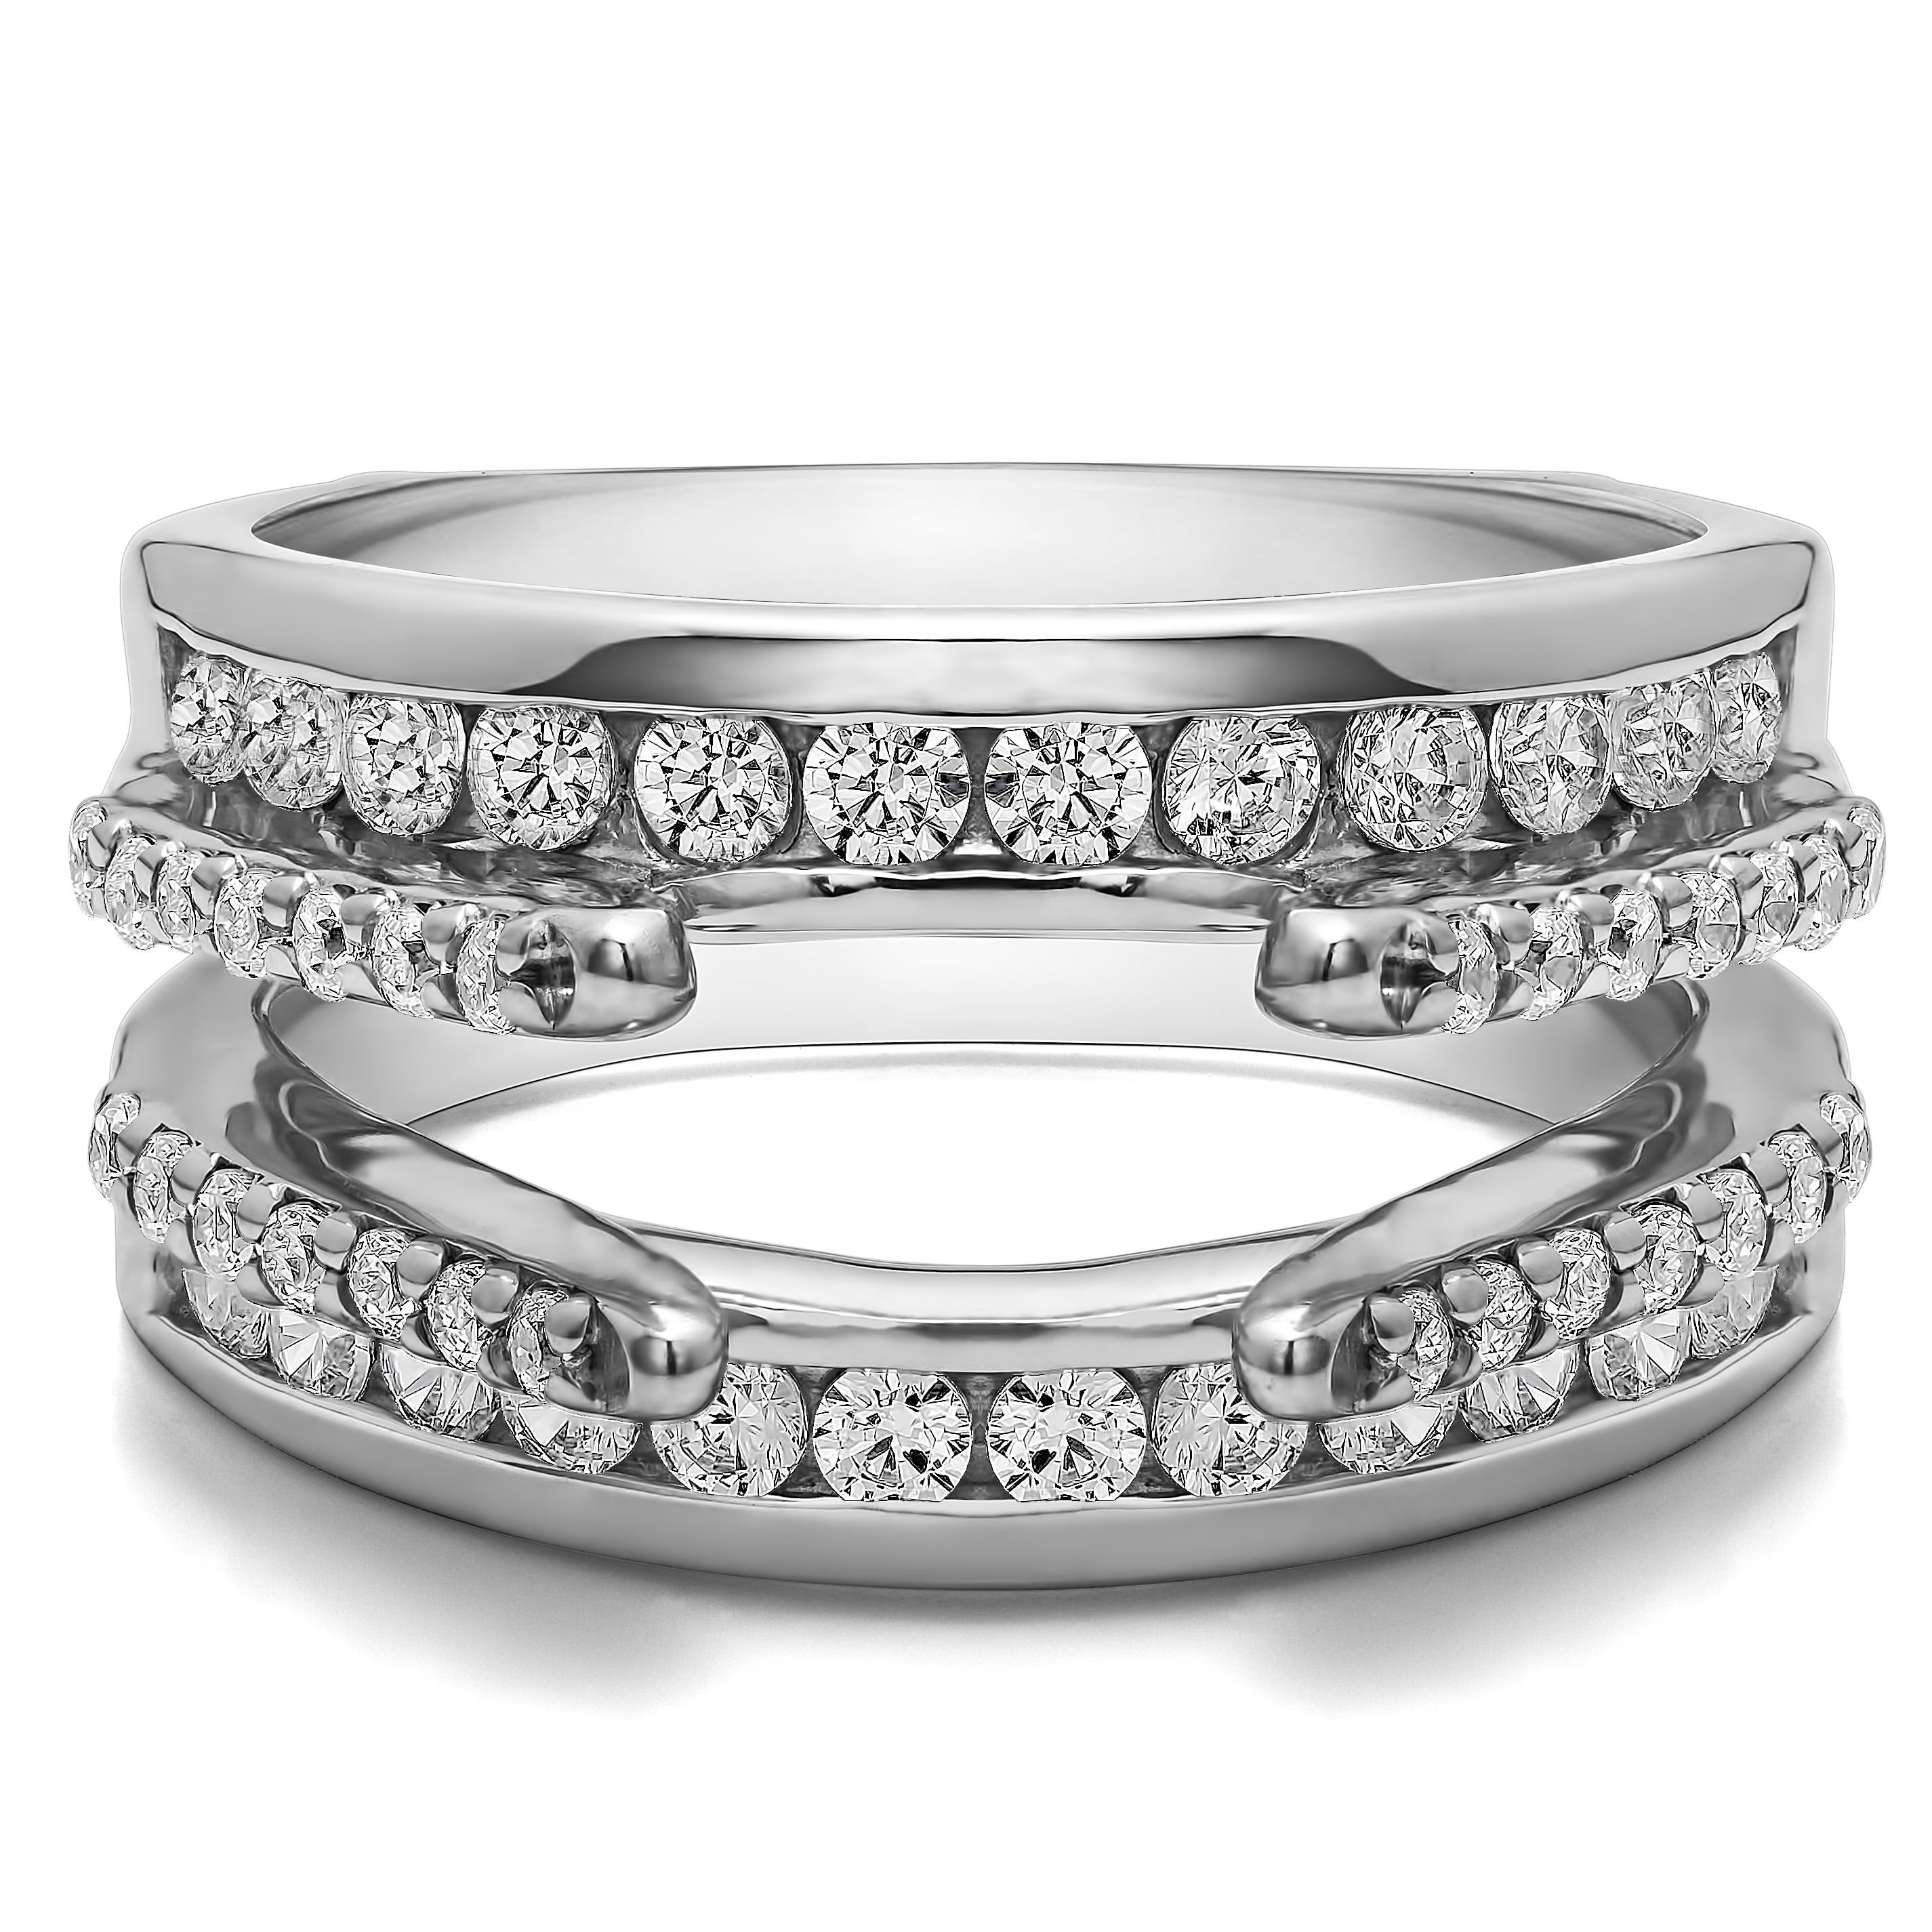 10k Gold 1/2ct TW Diamond Combination Cathedral and